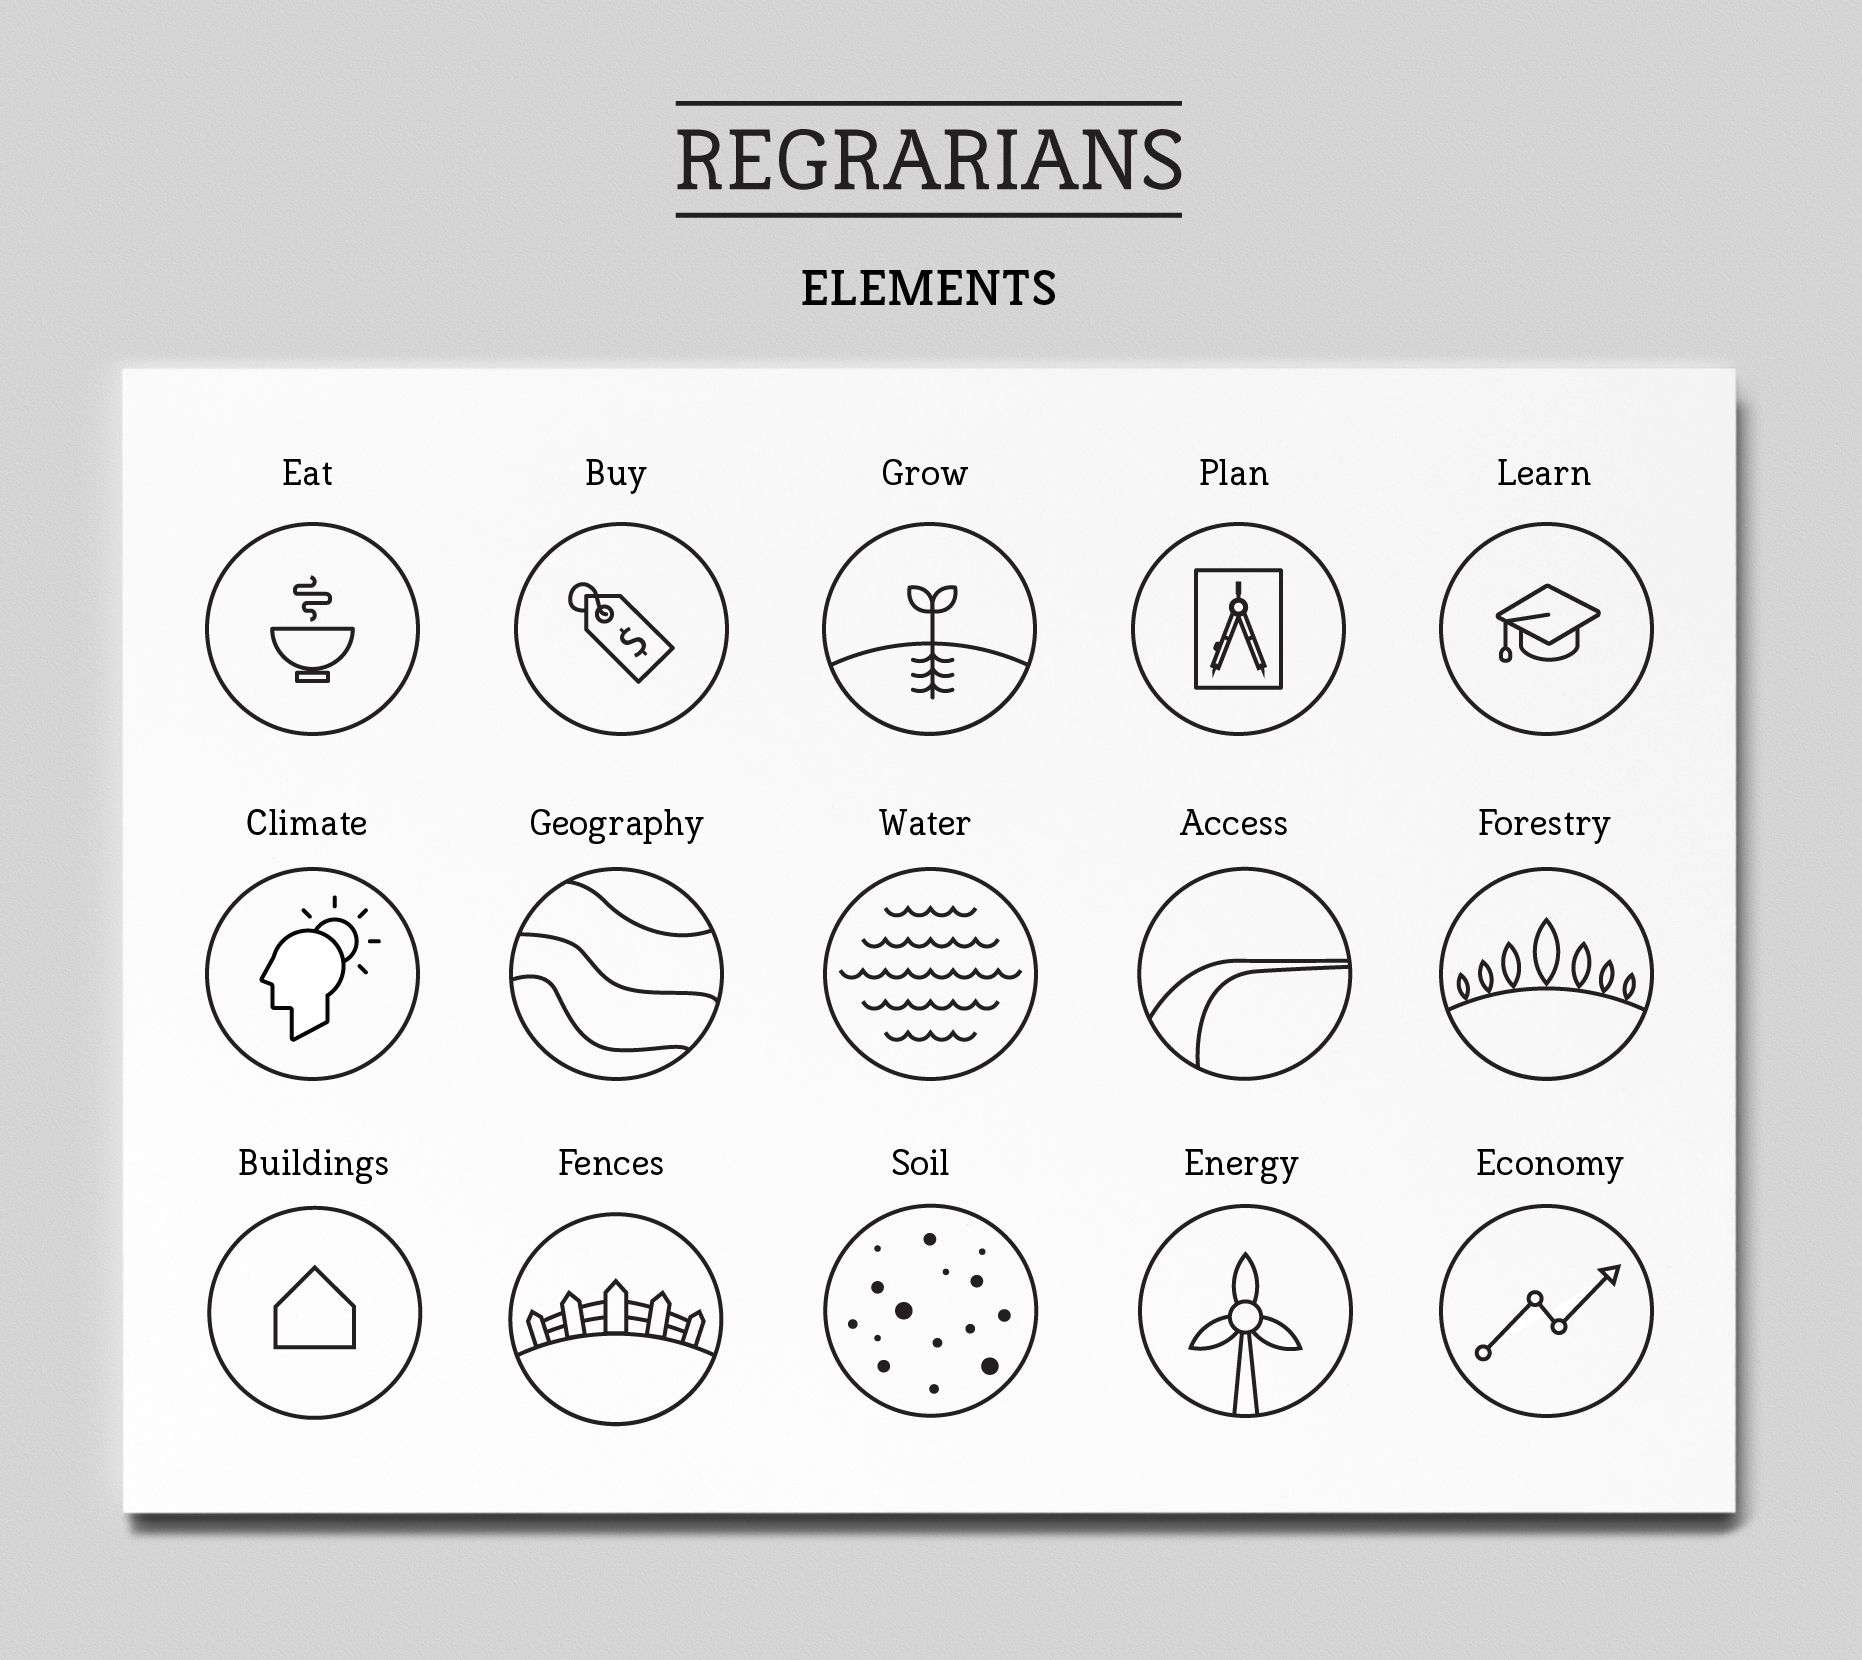 Regrarians Elements Mock-up copy